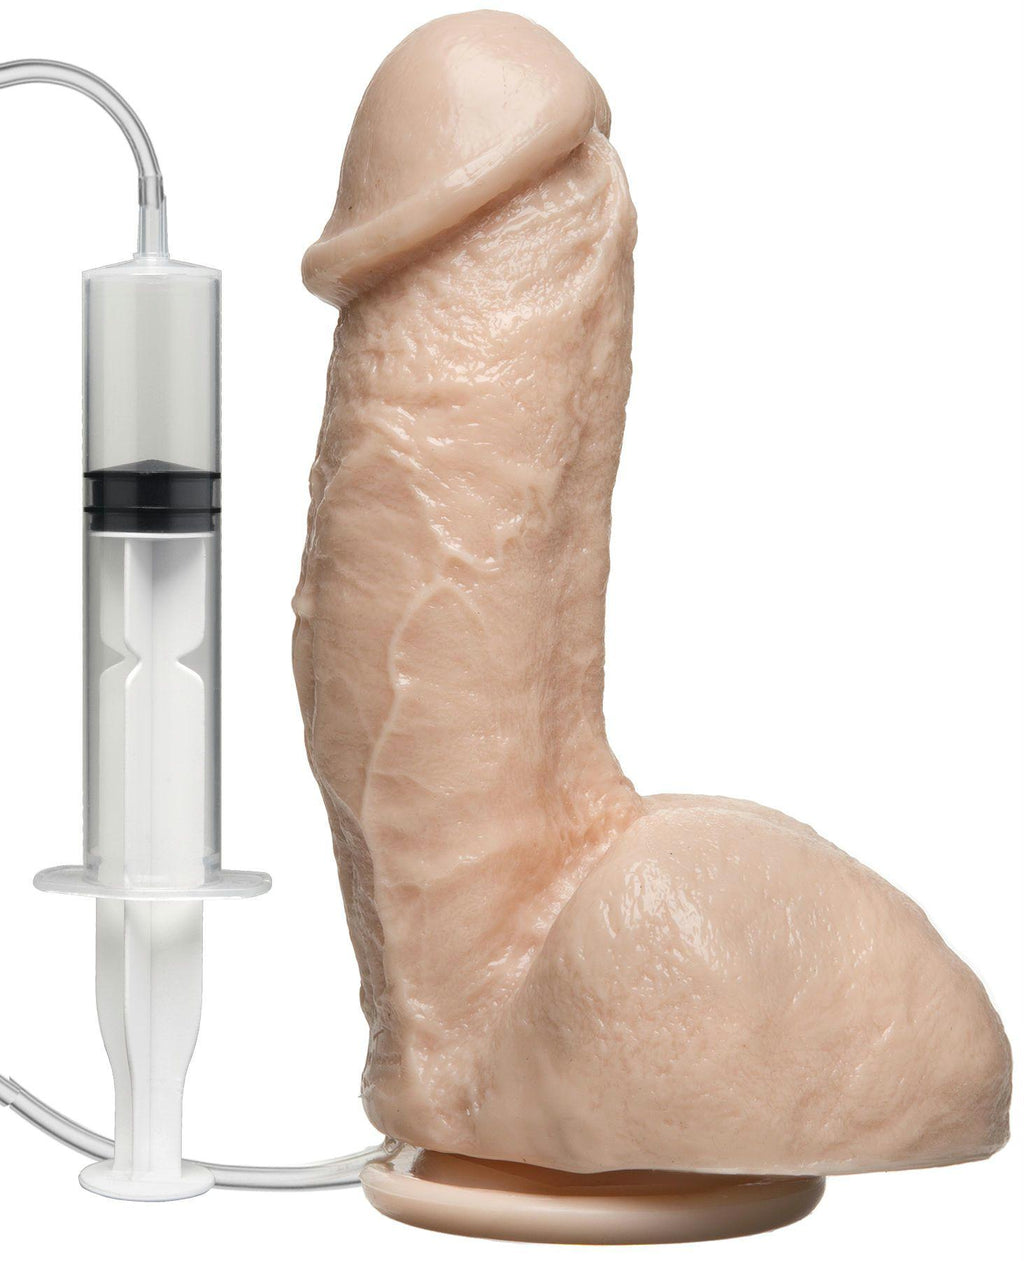 The Realistic Squirt Cock